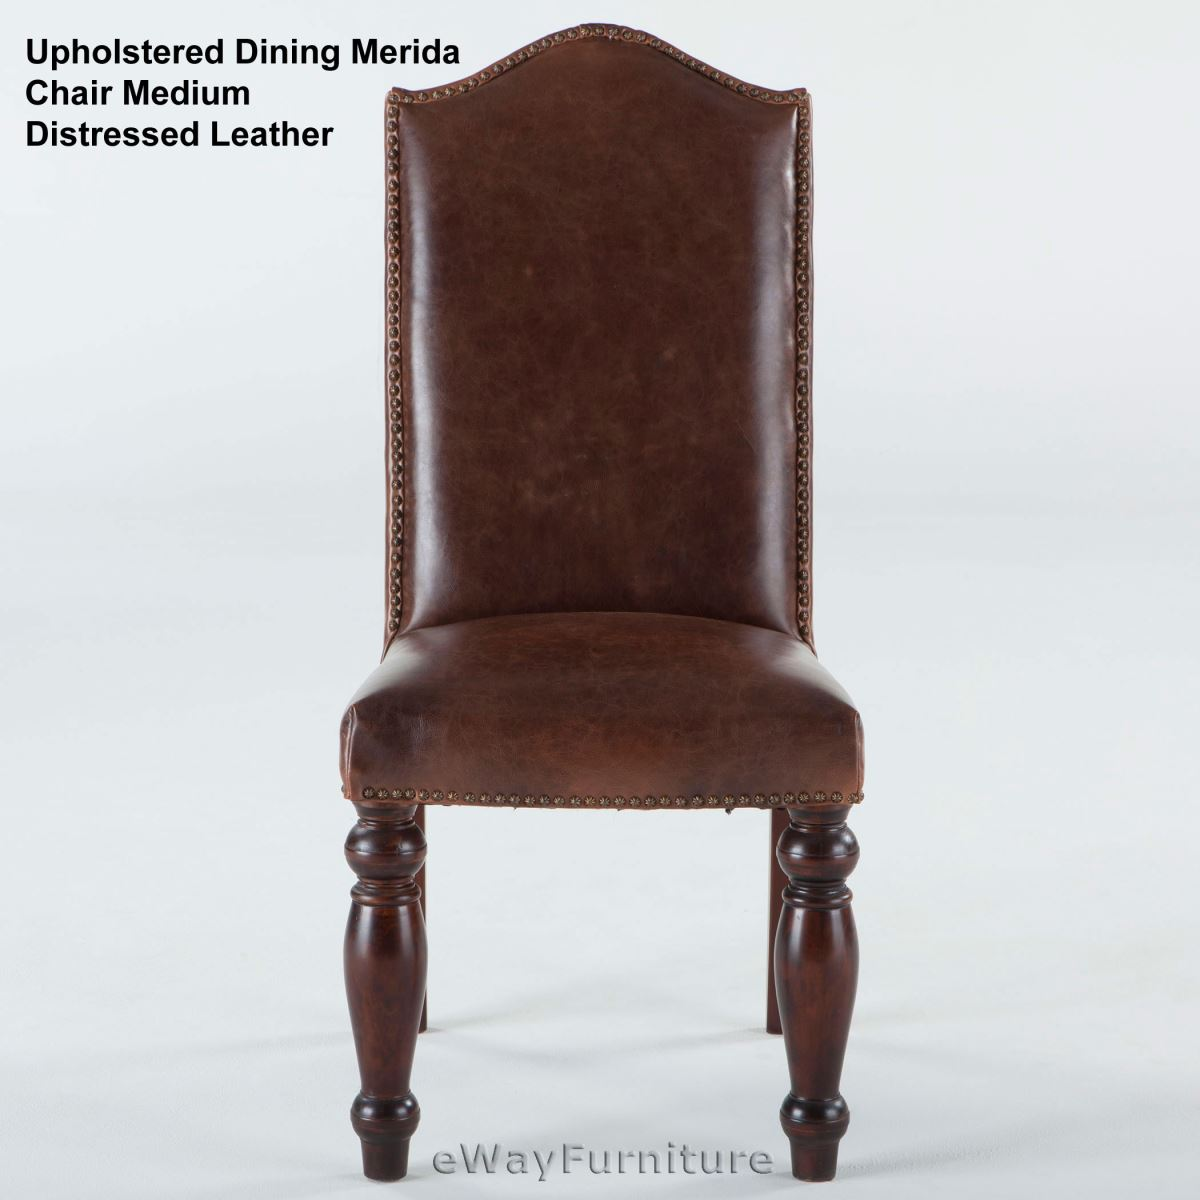 Base package quantity upholstered dining merida chair medium distressed leather